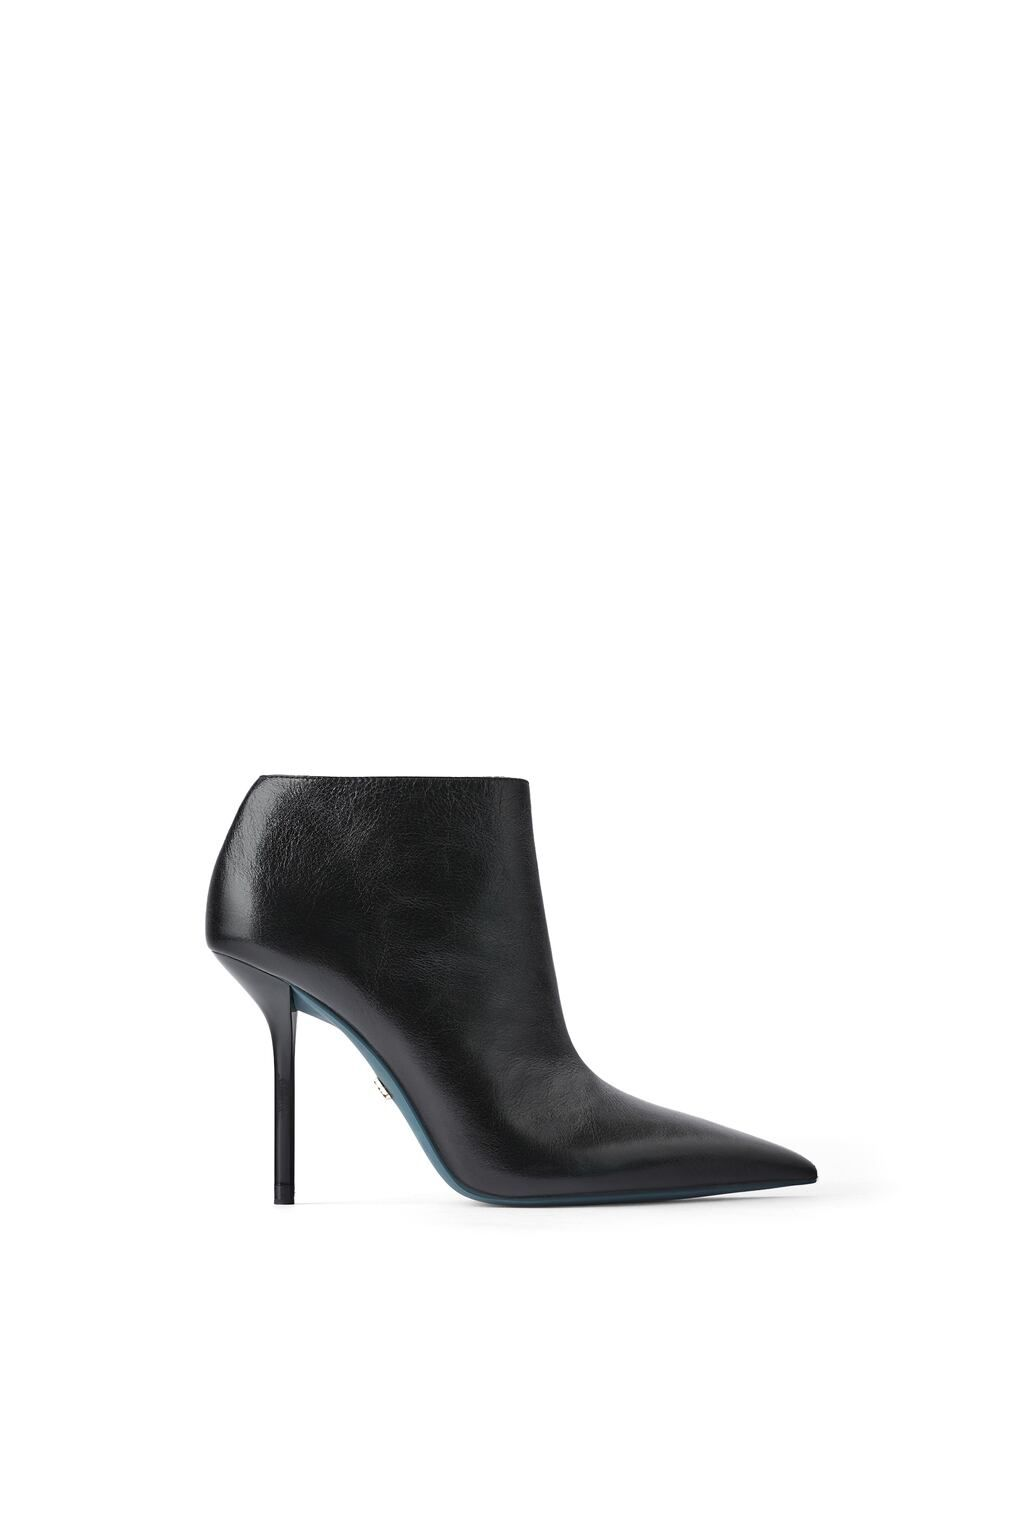 View All Shoes Woman Zara United Kingdom Leather Ankle Boots